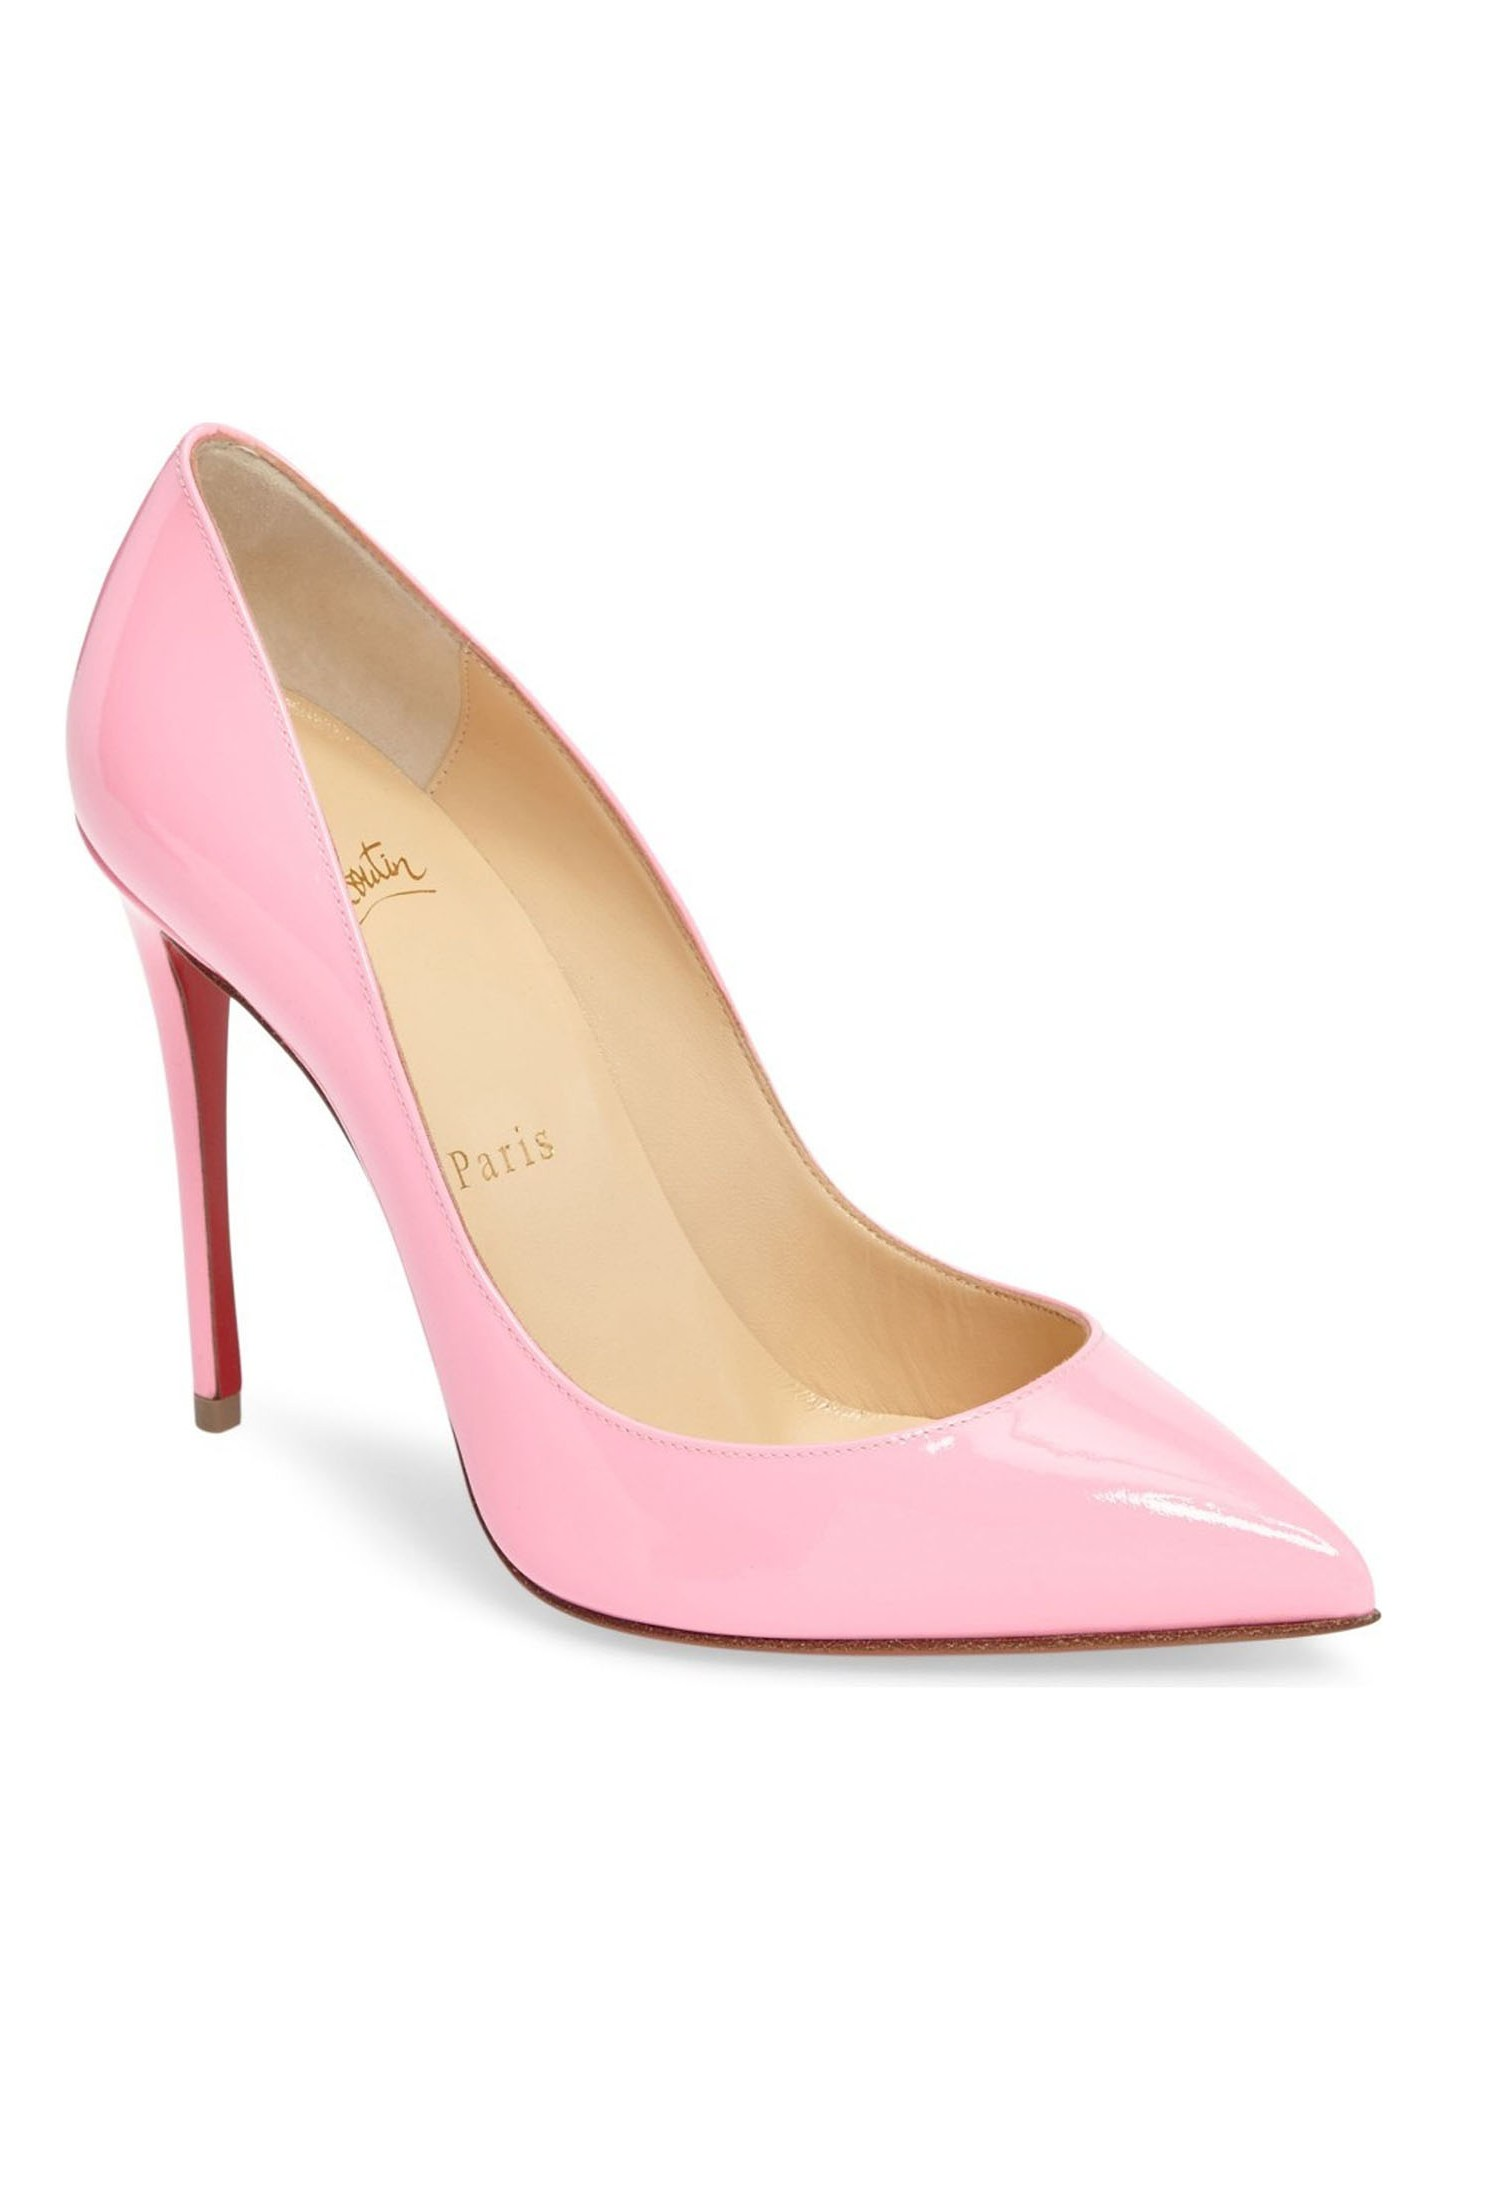 best sneakers e4b1c 048f8 'Pigalle Follies' Pointy Toe Pump